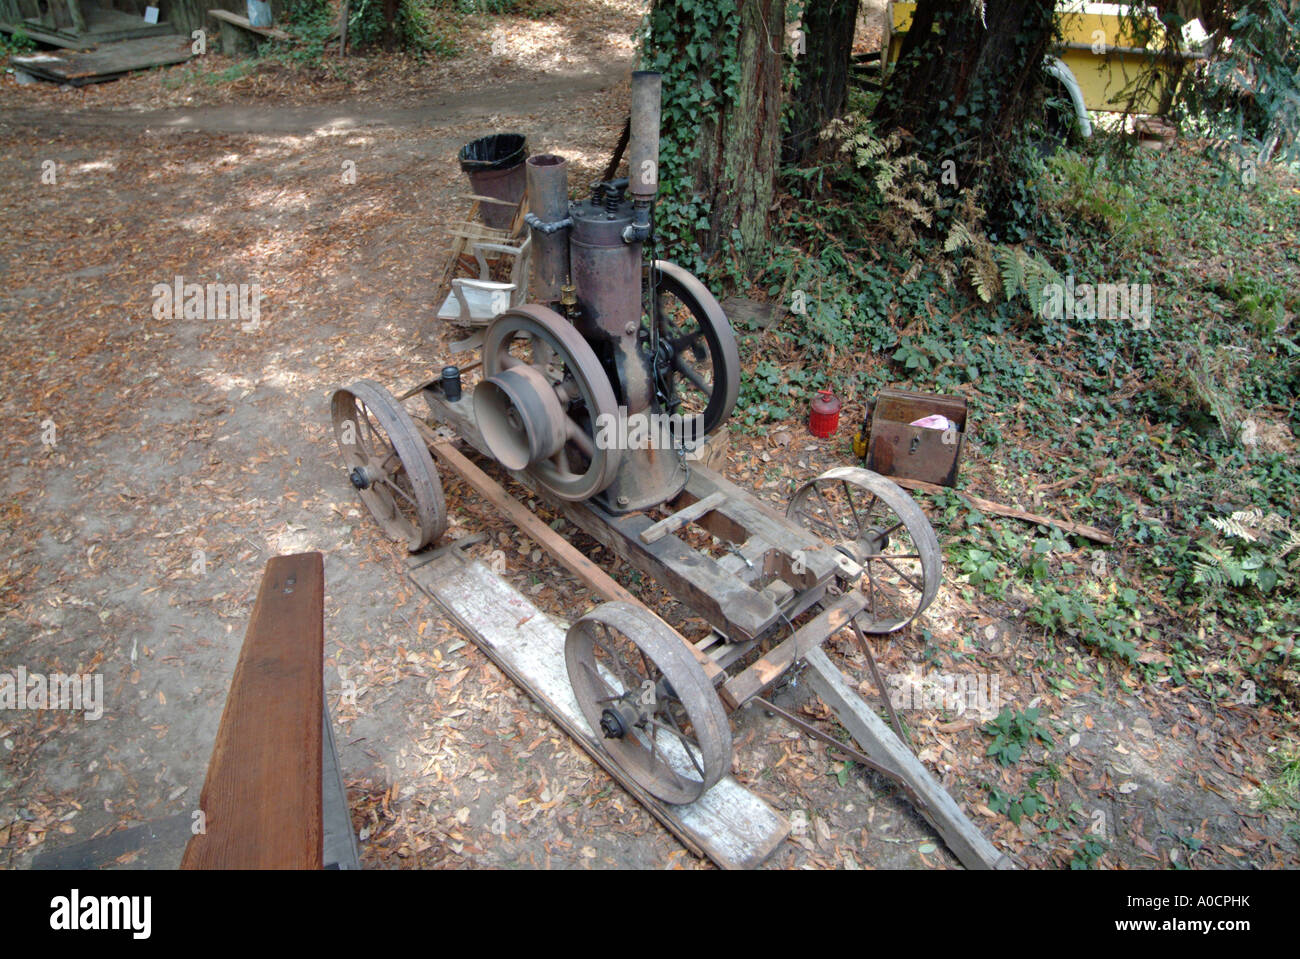 1904 antique Peerless 6 horsepower engine on an antique cart at a saw mill - Stock Image